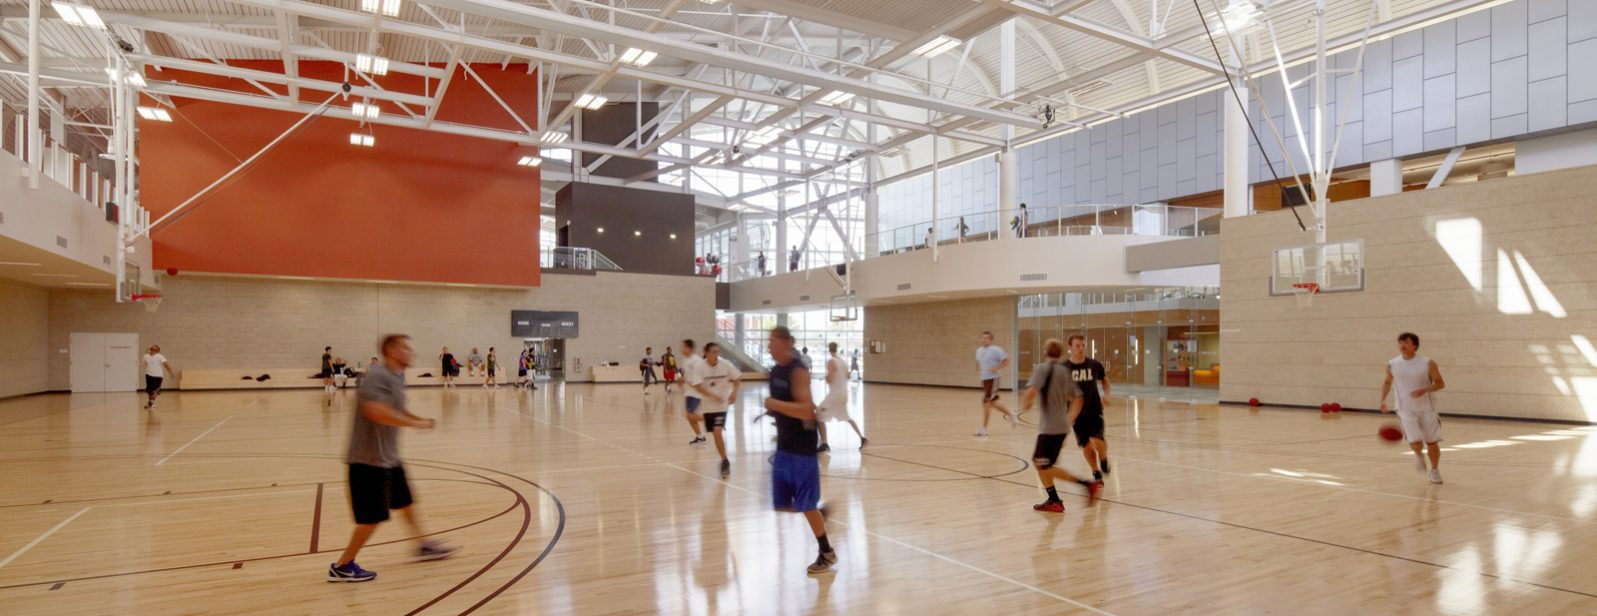 California Polytechnic State University, Recreation Center 2